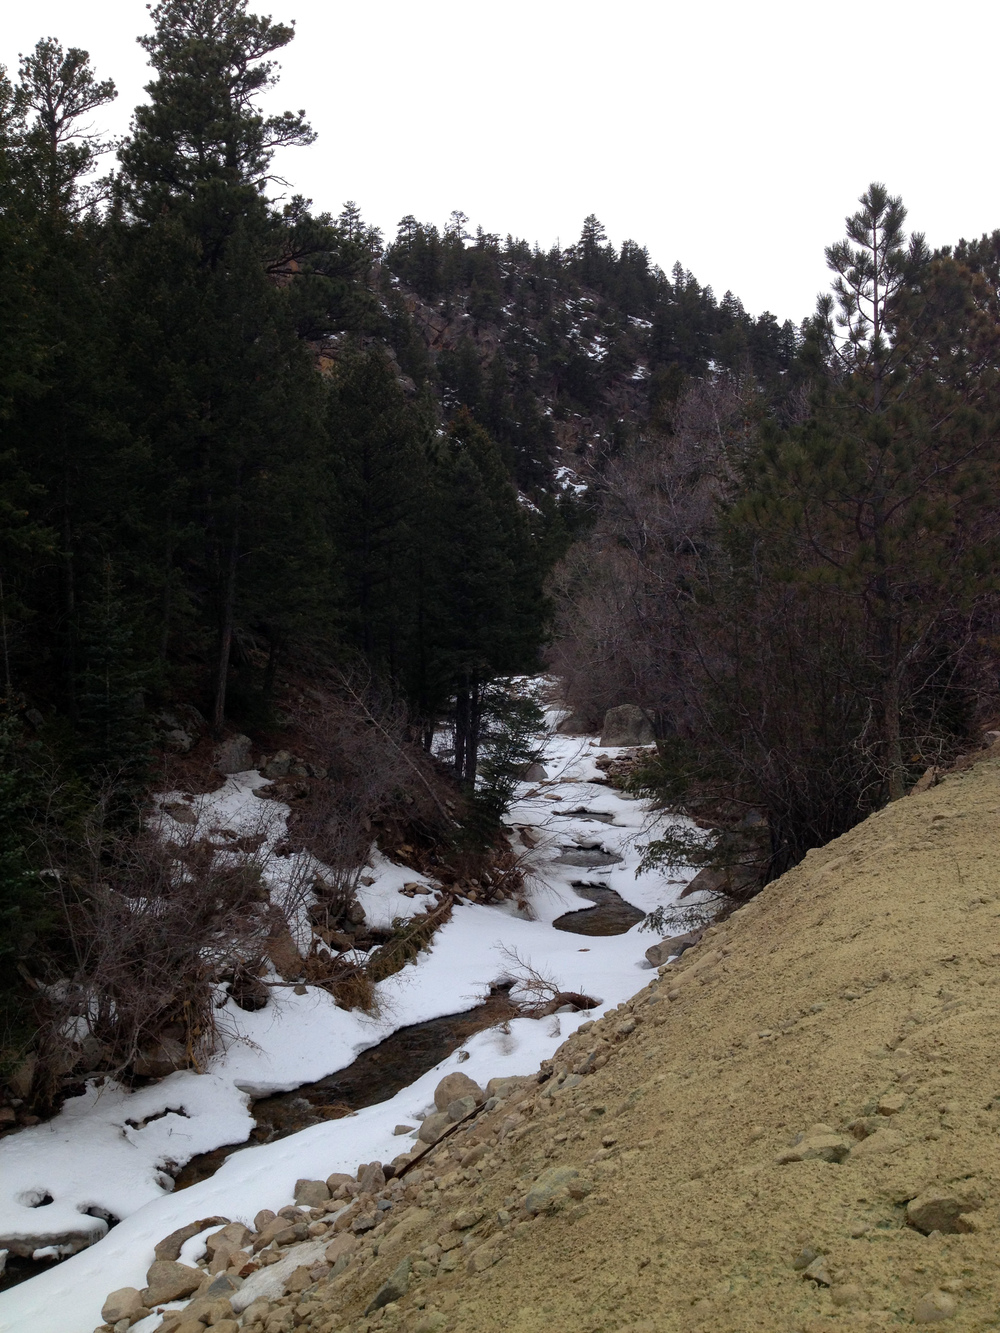 In the canyon. Winter makes its exit.